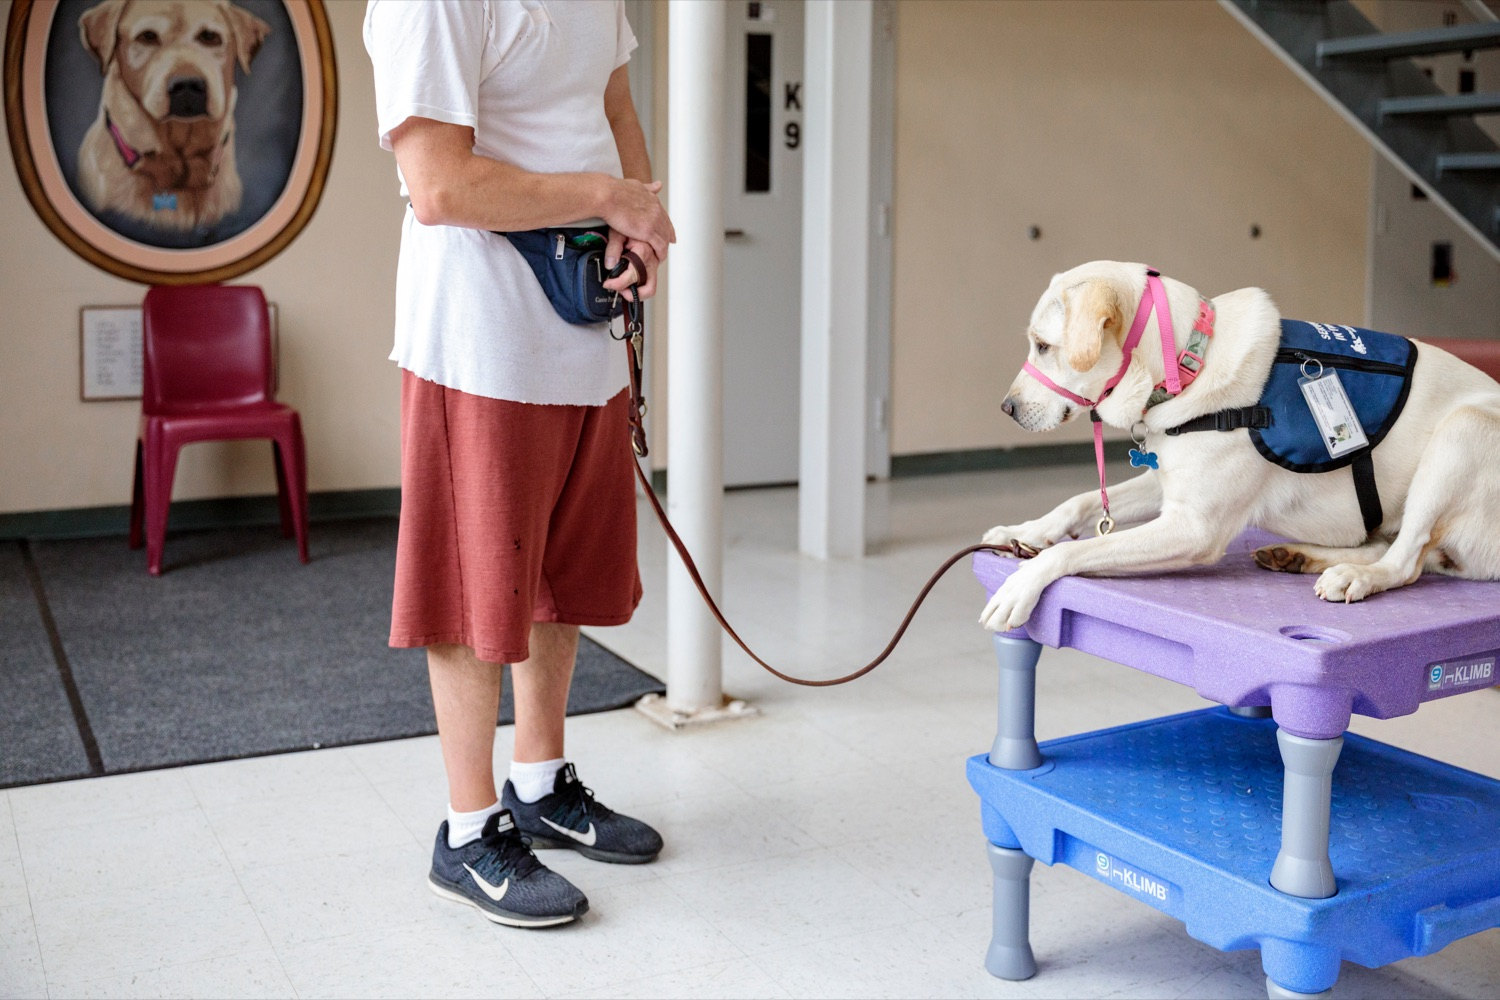 """<a href=""""https://filesource.wostreaming.net/commonwealthofpa/photo/18779_DOC_PostCovid_NK_011.jpg"""" target=""""_blank"""">⇣Download Photo<br></a>Inmates work with service dogs as part of """"Canine Partners for Life"""" during a media tour, where staff and inmates discussed life in a congregate setting during the pandemic, how the DOC responded to COVID-19, and next steps for the department as restrictions loosen and in-person visitation is safely re-introduced throughout the state prison system, on Wednesday, June 2, 2021."""